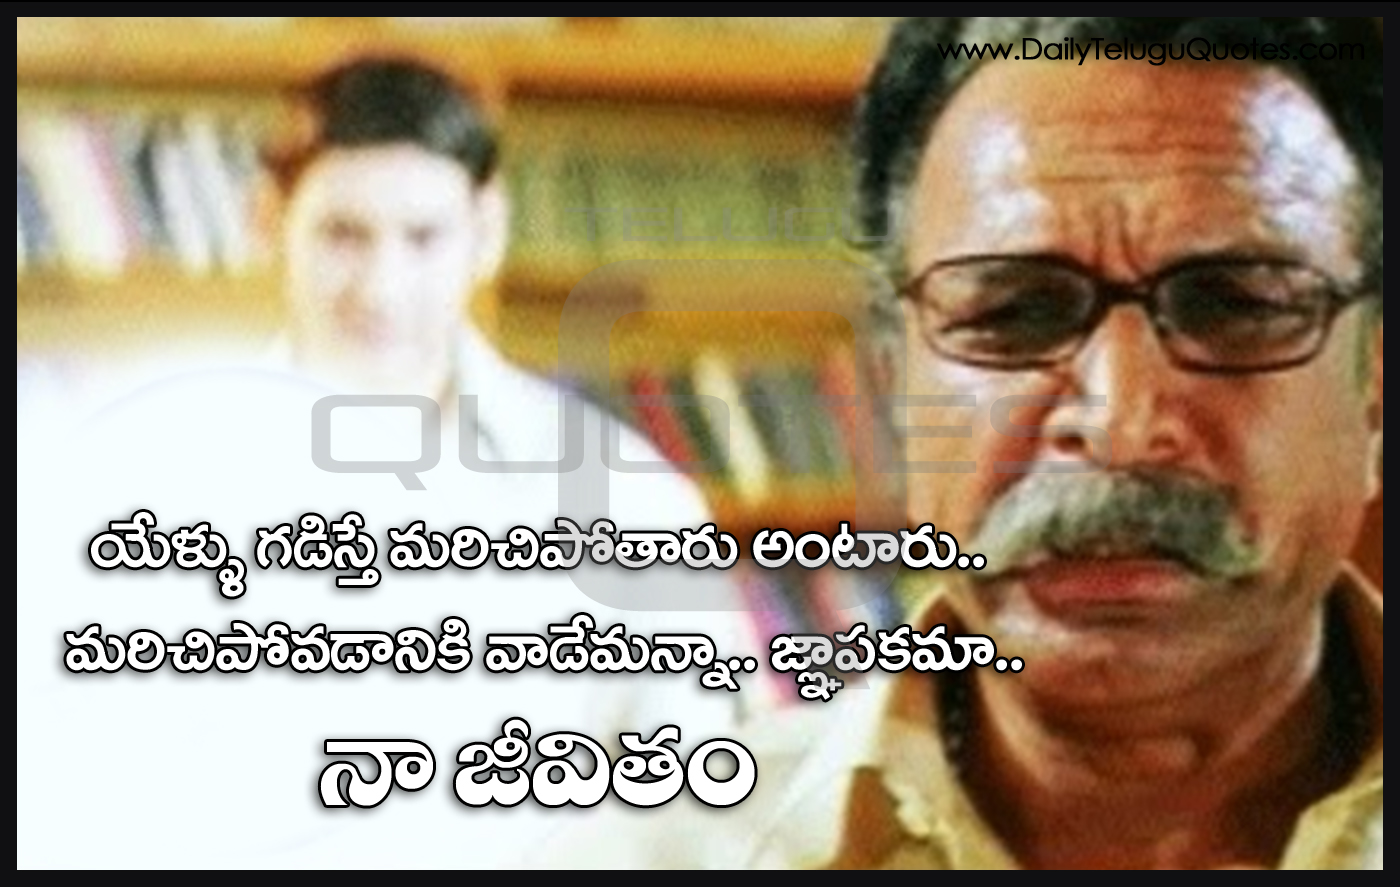 Atadu Movie Dialogues HD Wallpapers Best Telugu Movie Dialogues Mahesh Babu Movies Telugu Quotes